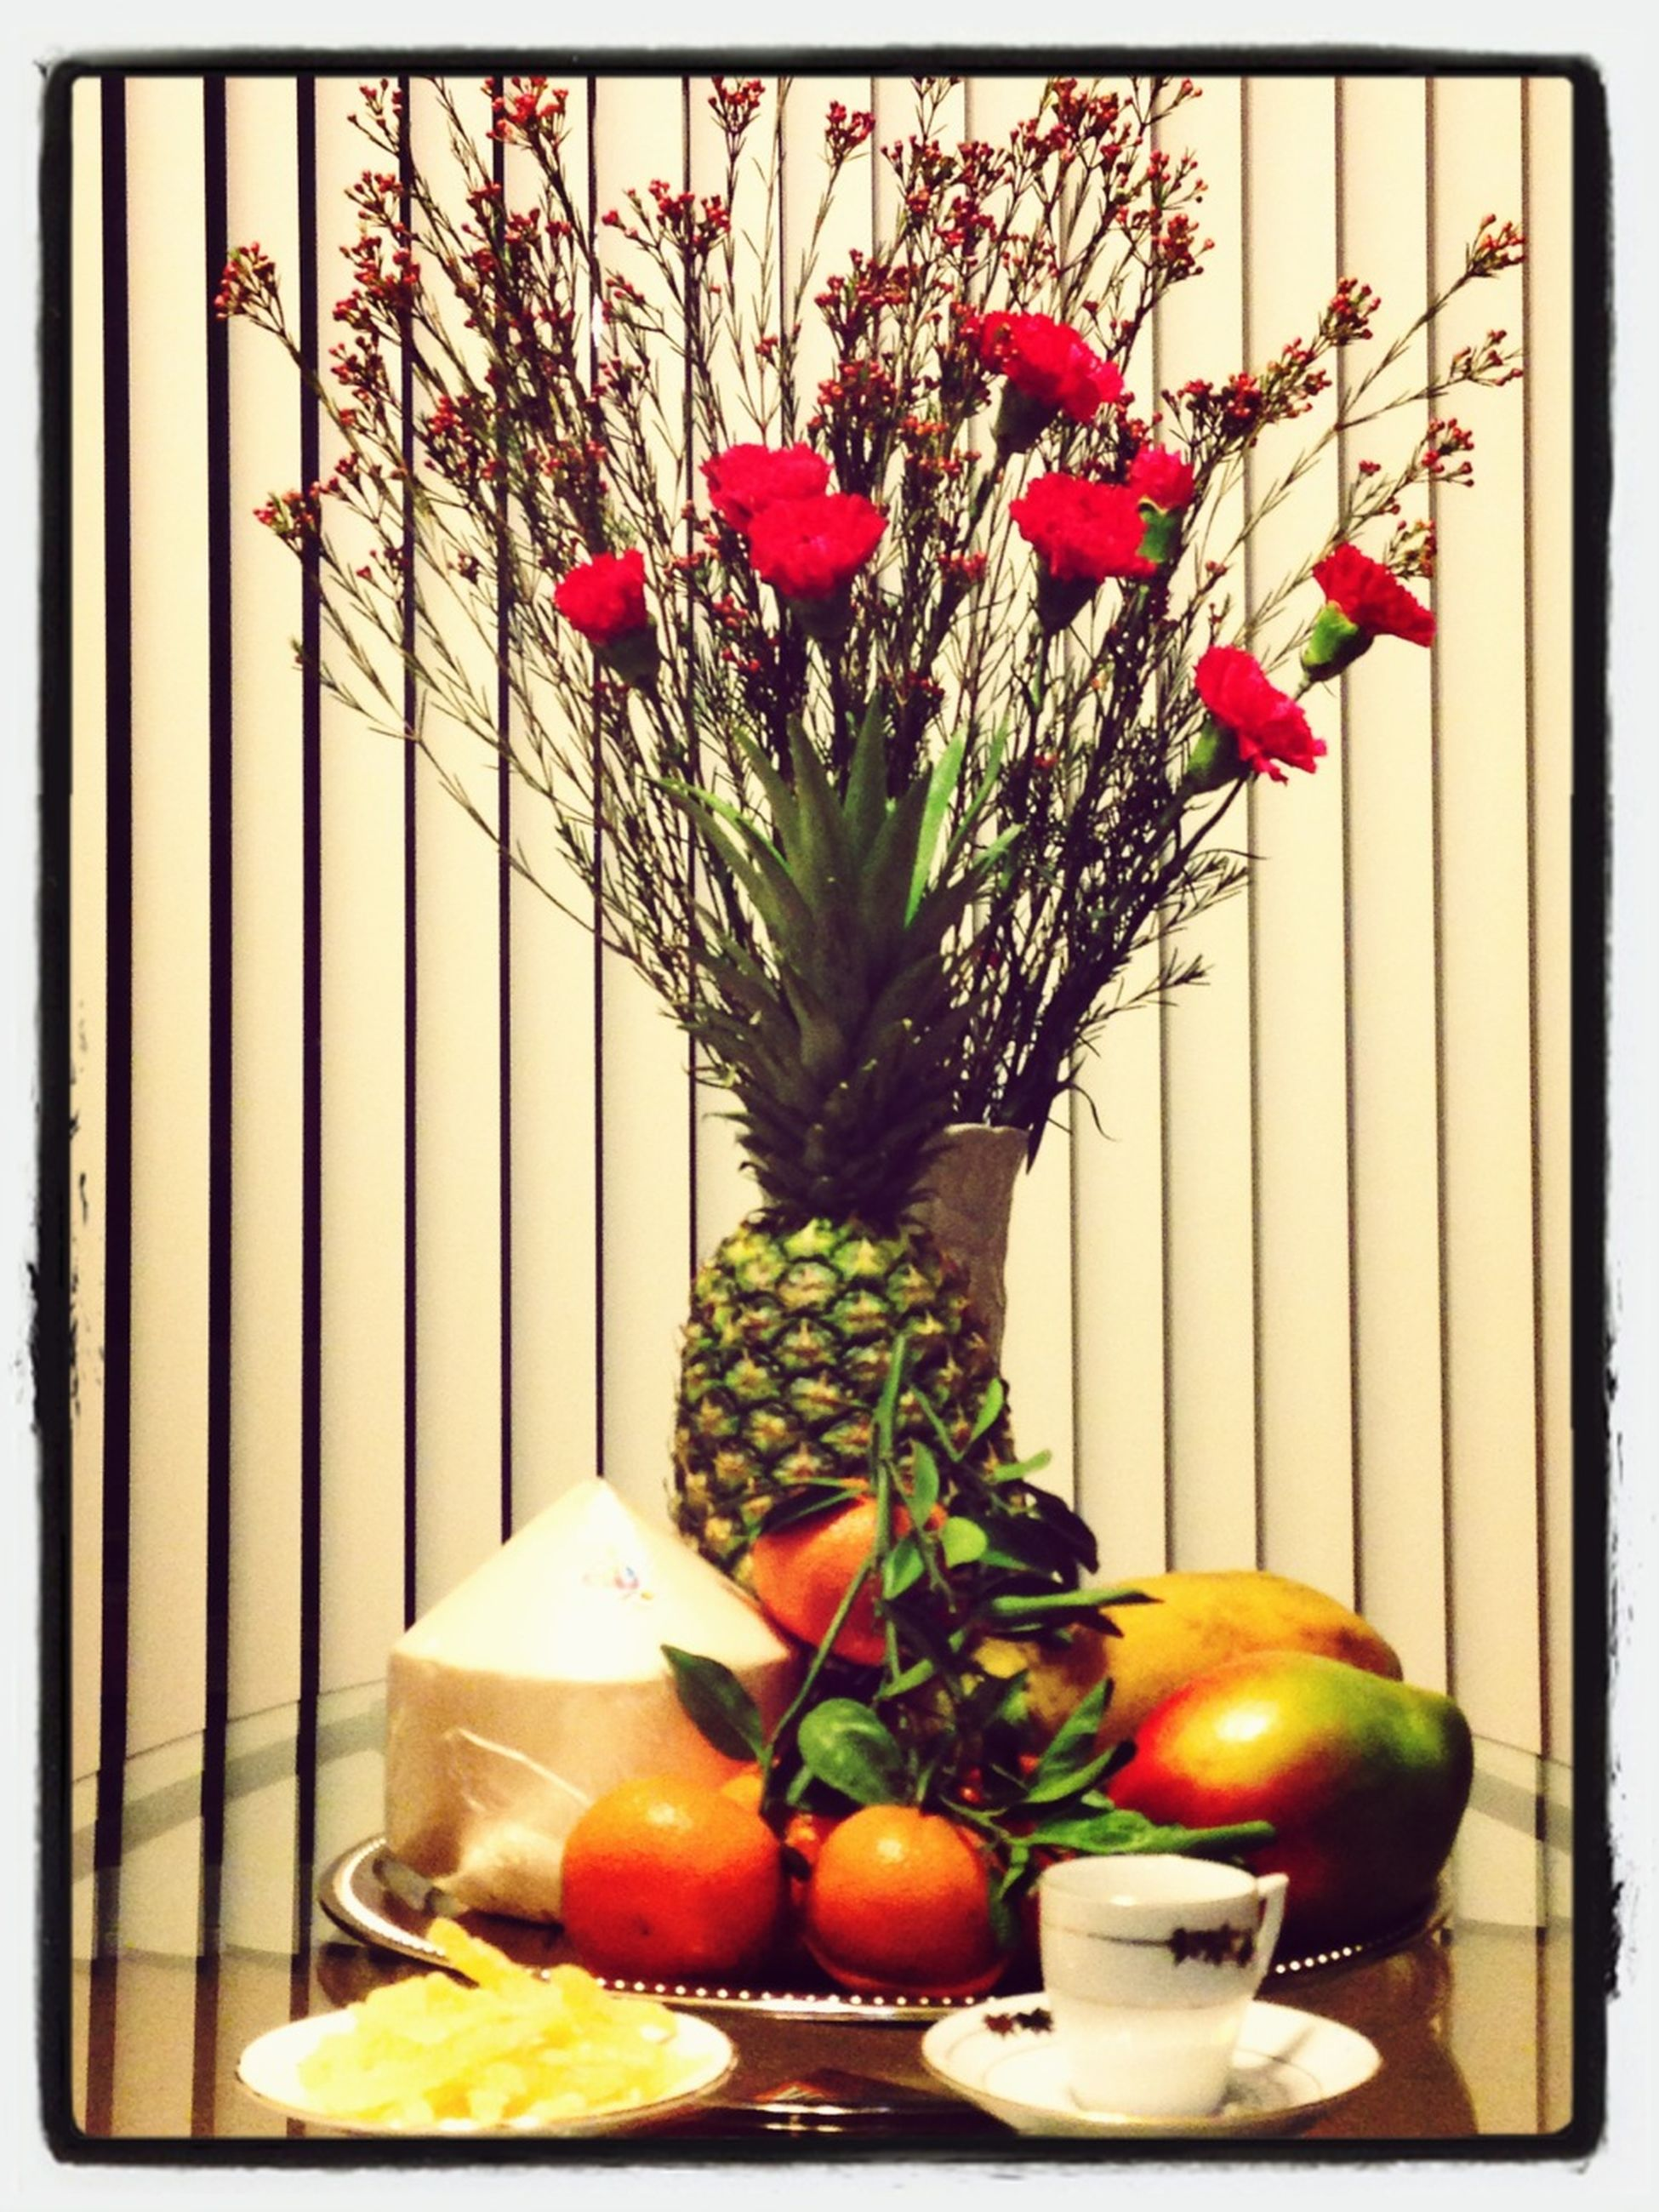 flower, freshness, vase, indoors, growth, potted plant, plant, red, transfer print, flower pot, fragility, leaf, home interior, stem, auto post production filter, table, decoration, fruit, nature, wall - building feature